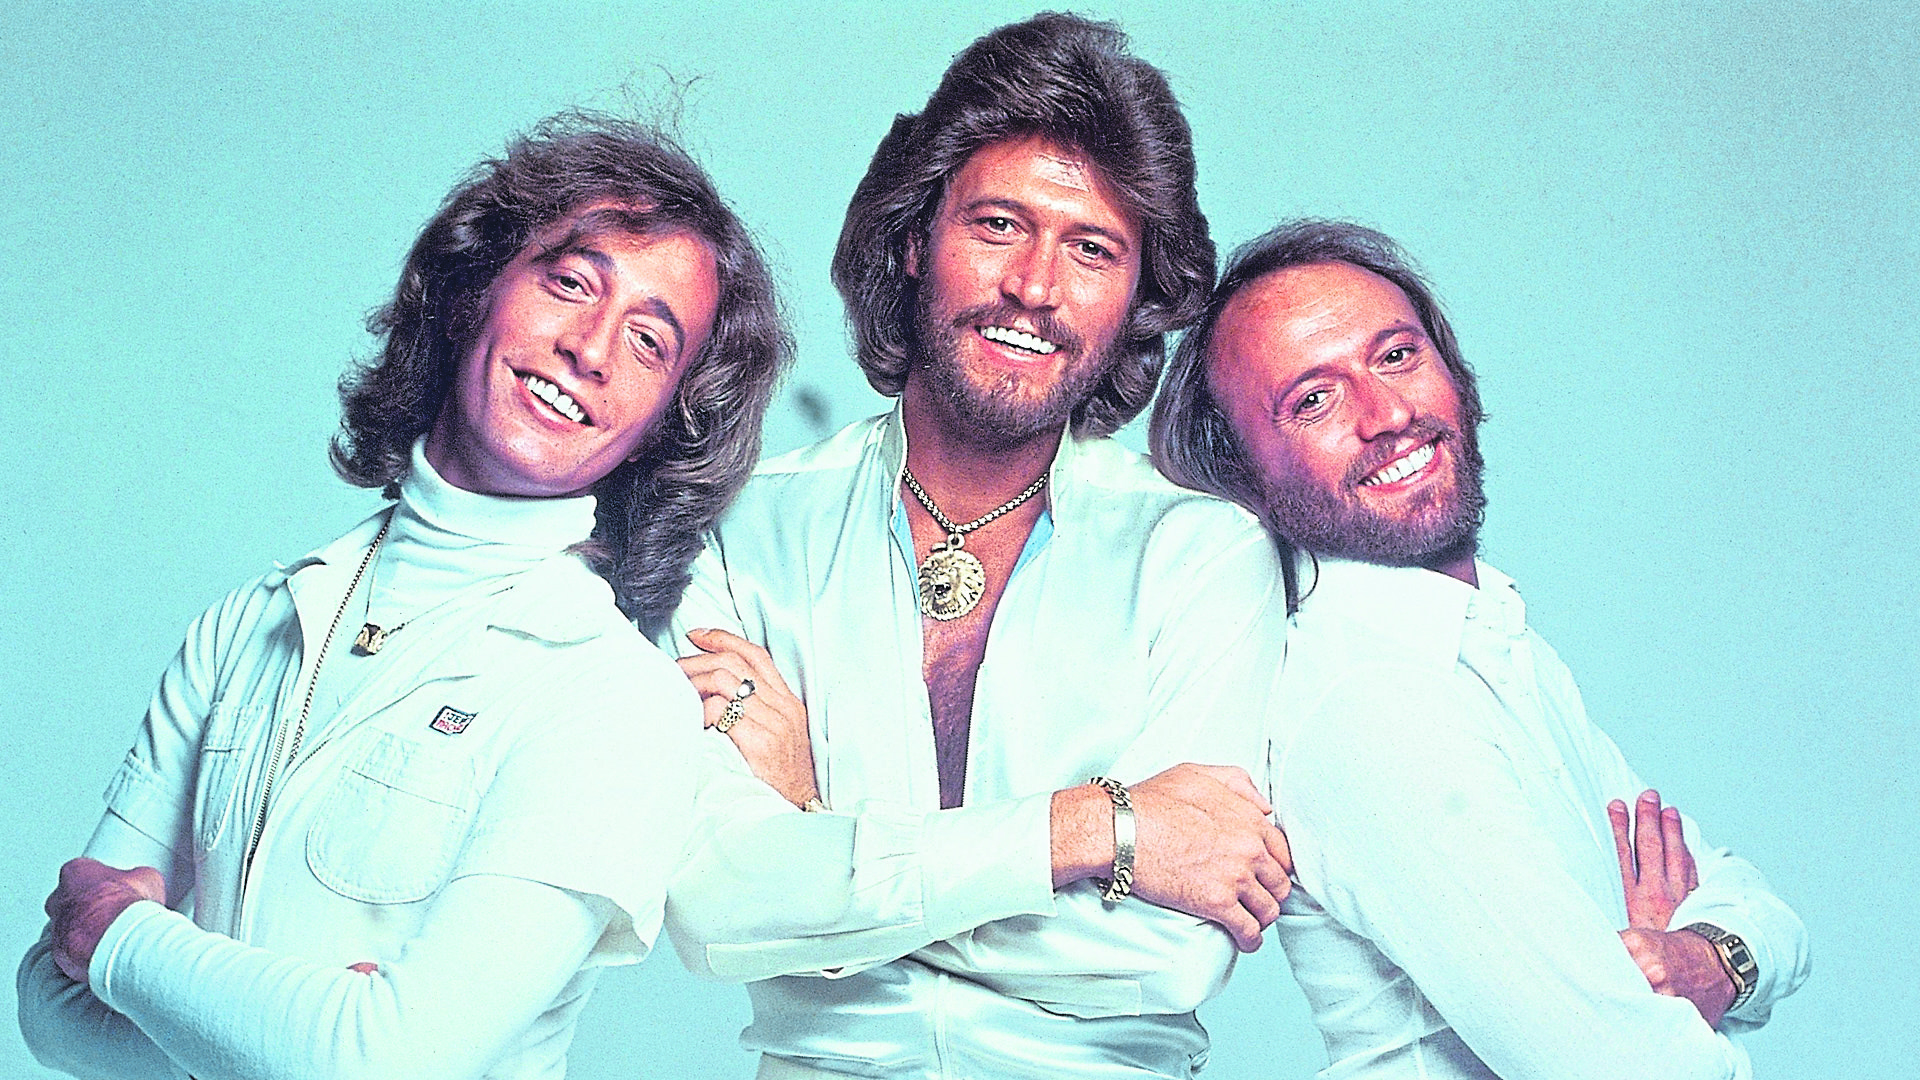 The Bee Gees went to number one in the US charts 41 years ago this week with disco anthem Stayin' Alive – which turns out to have the ideal number of beats per minute to be a helpful accompaniment to performing CPR.